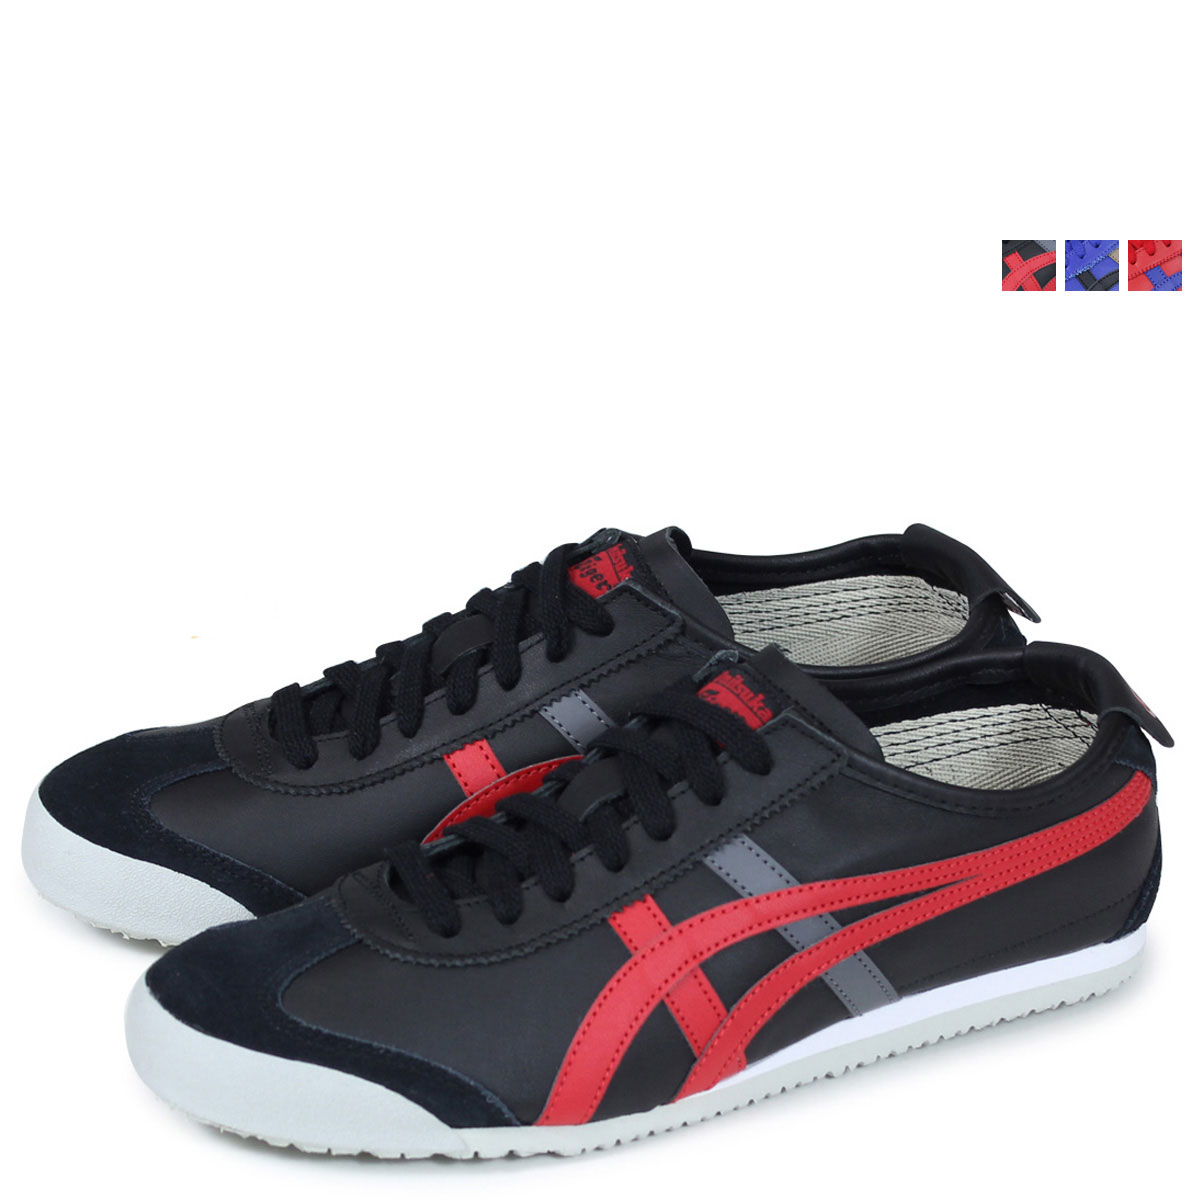 purchase cheap af437 130e8 ALLSPORTS  Onitsuka tiger Mexico 66 Onitsuka Tiger asics men gap Dis  sneakers ASICS MEXICO 66 TH4J2L 2345 4590 9023 shoes  2 10 Shinnyu load     Rakuten ...